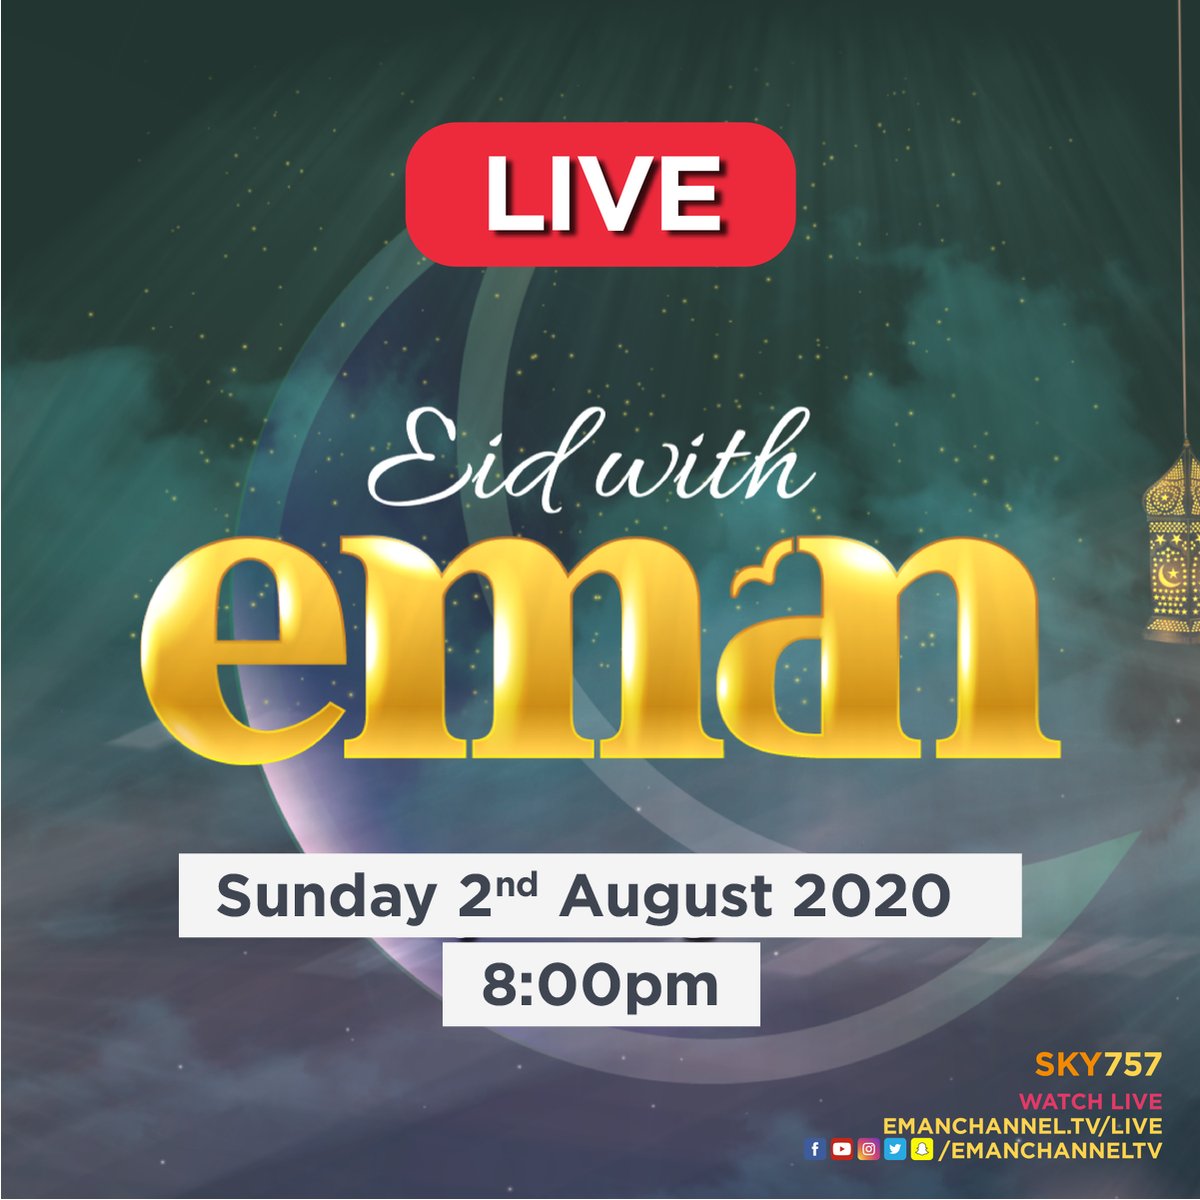 Our Eid with Eman show is going LIVE at 8pm tonight! Make sure to tune in for some fun filled light hearted entertainment!  #Eid #Hajj https://t.co/ez58BLhgmz